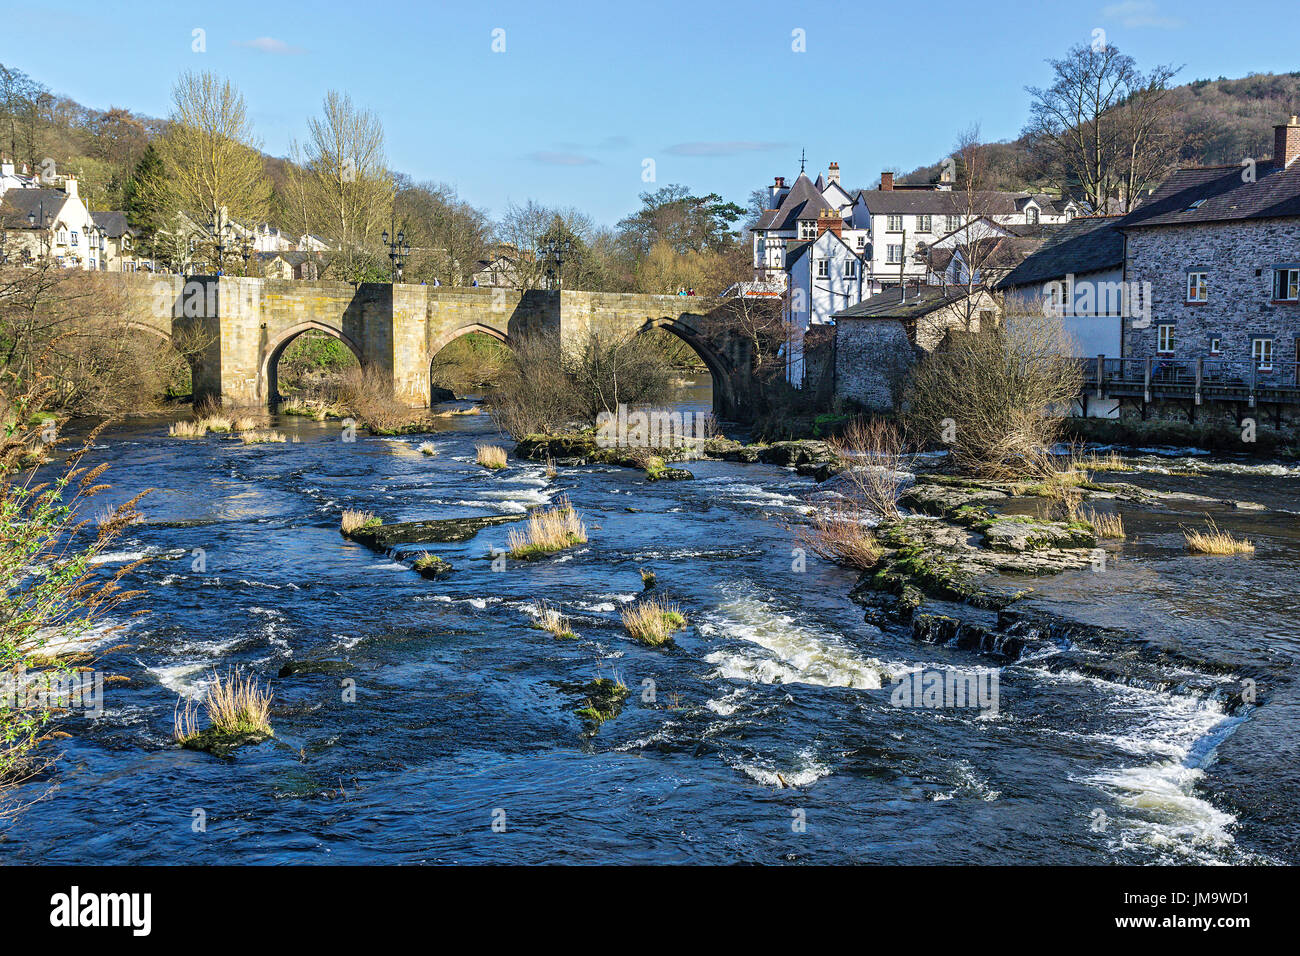 River Dee flowing through the centre of Llangollen showing the Dee Bridge a scheduled ancient monument Denbighshire Wales UK March 3081 - Stock Image